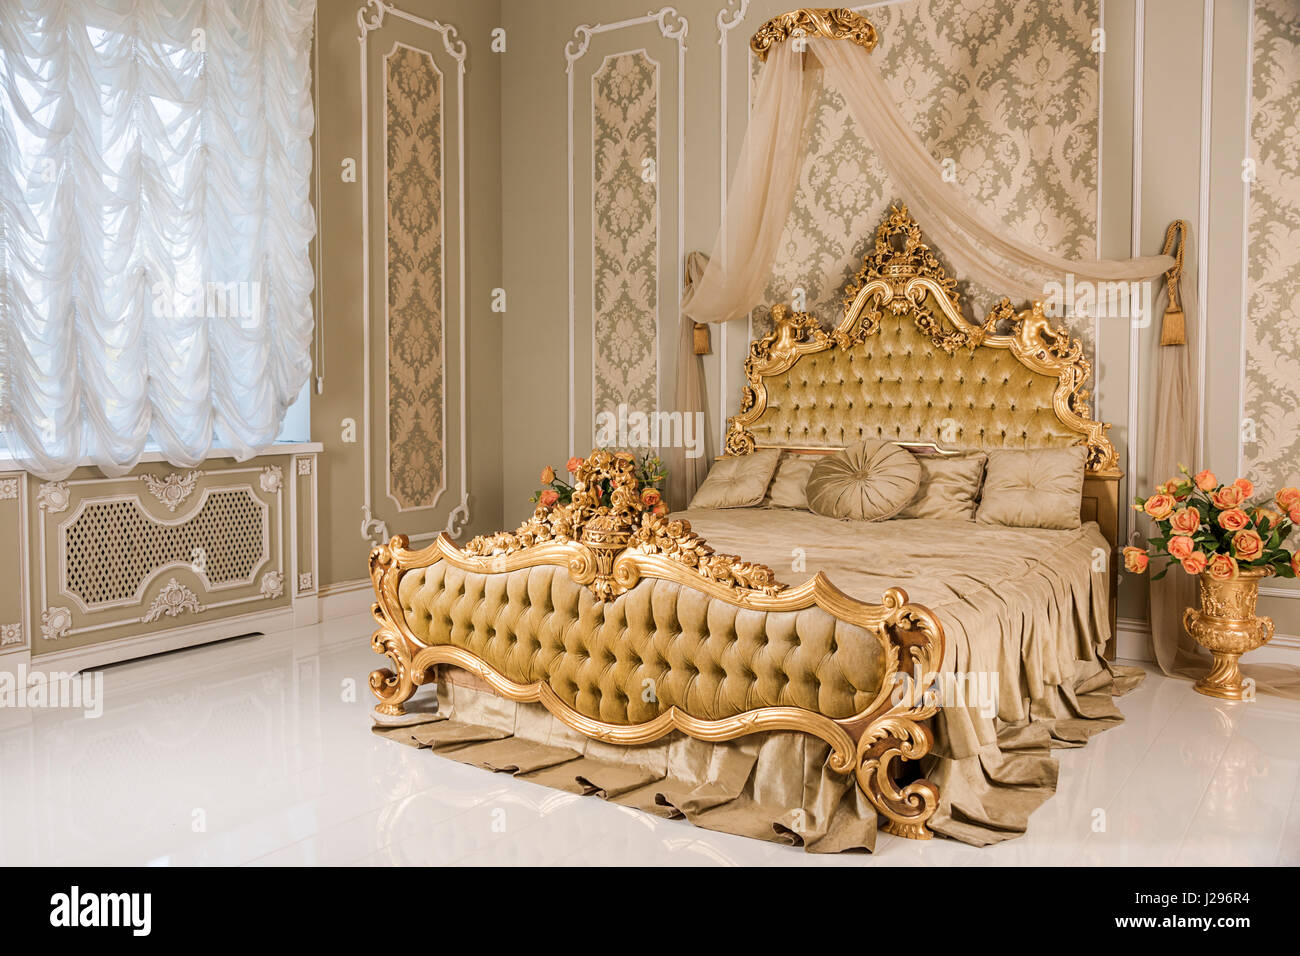 Luxury bedroom in light colors with golden furniture details. Big ...